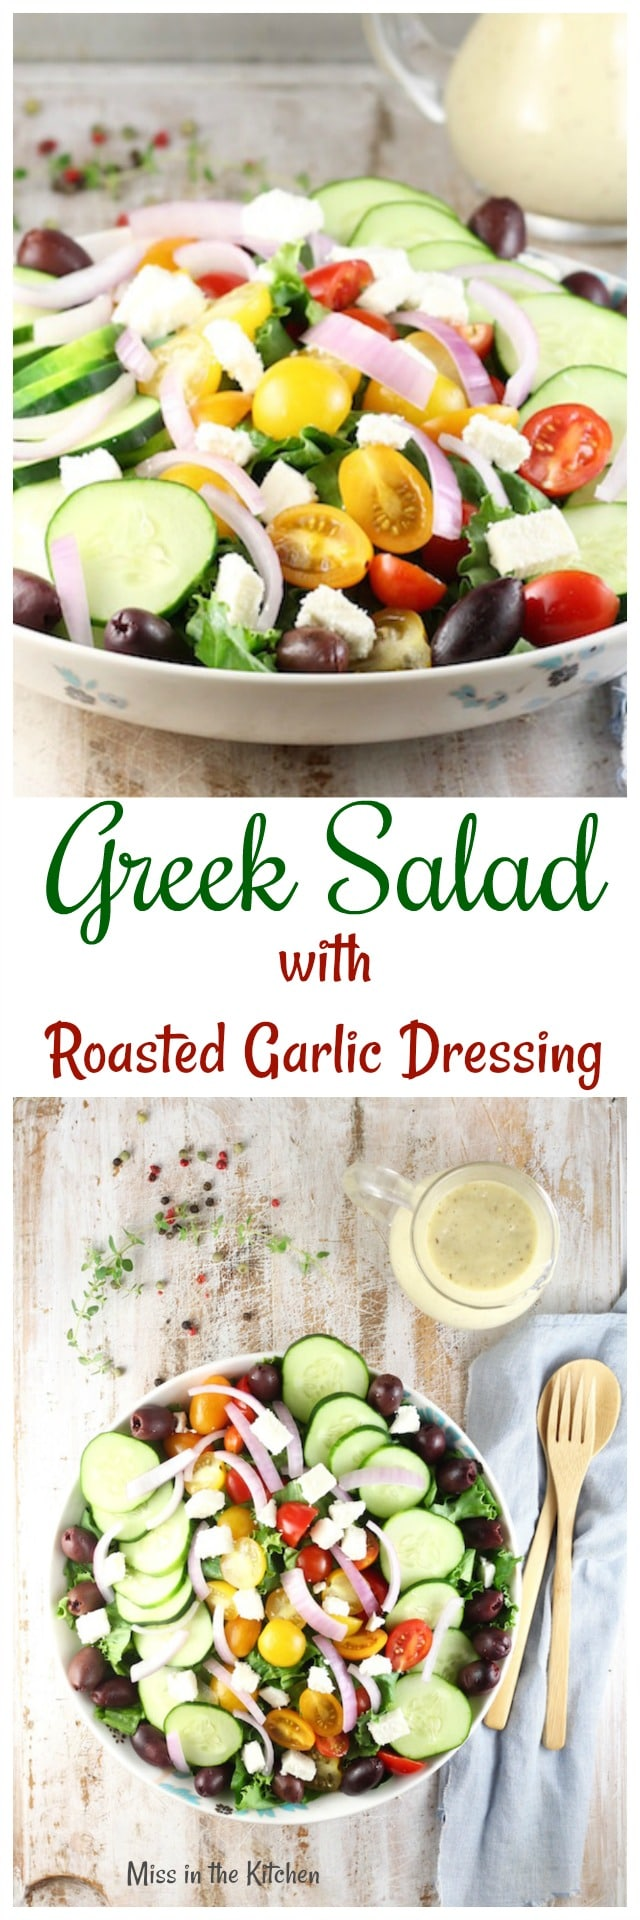 Greek Salad with Roasted Garlic Salad Dressing Recipe from MissintheKitchen.com